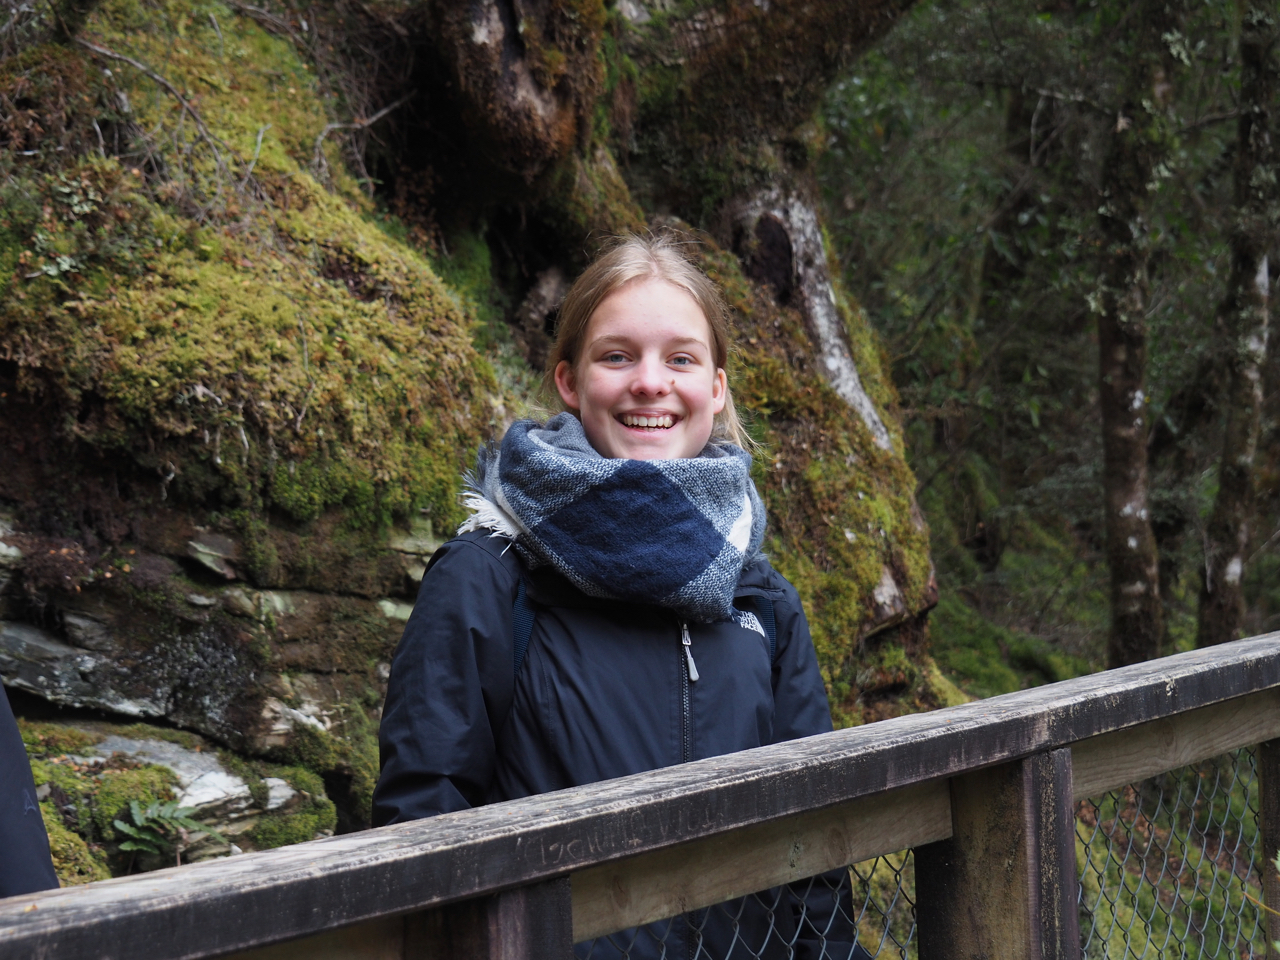 International Student Tours - Maike Friehoff